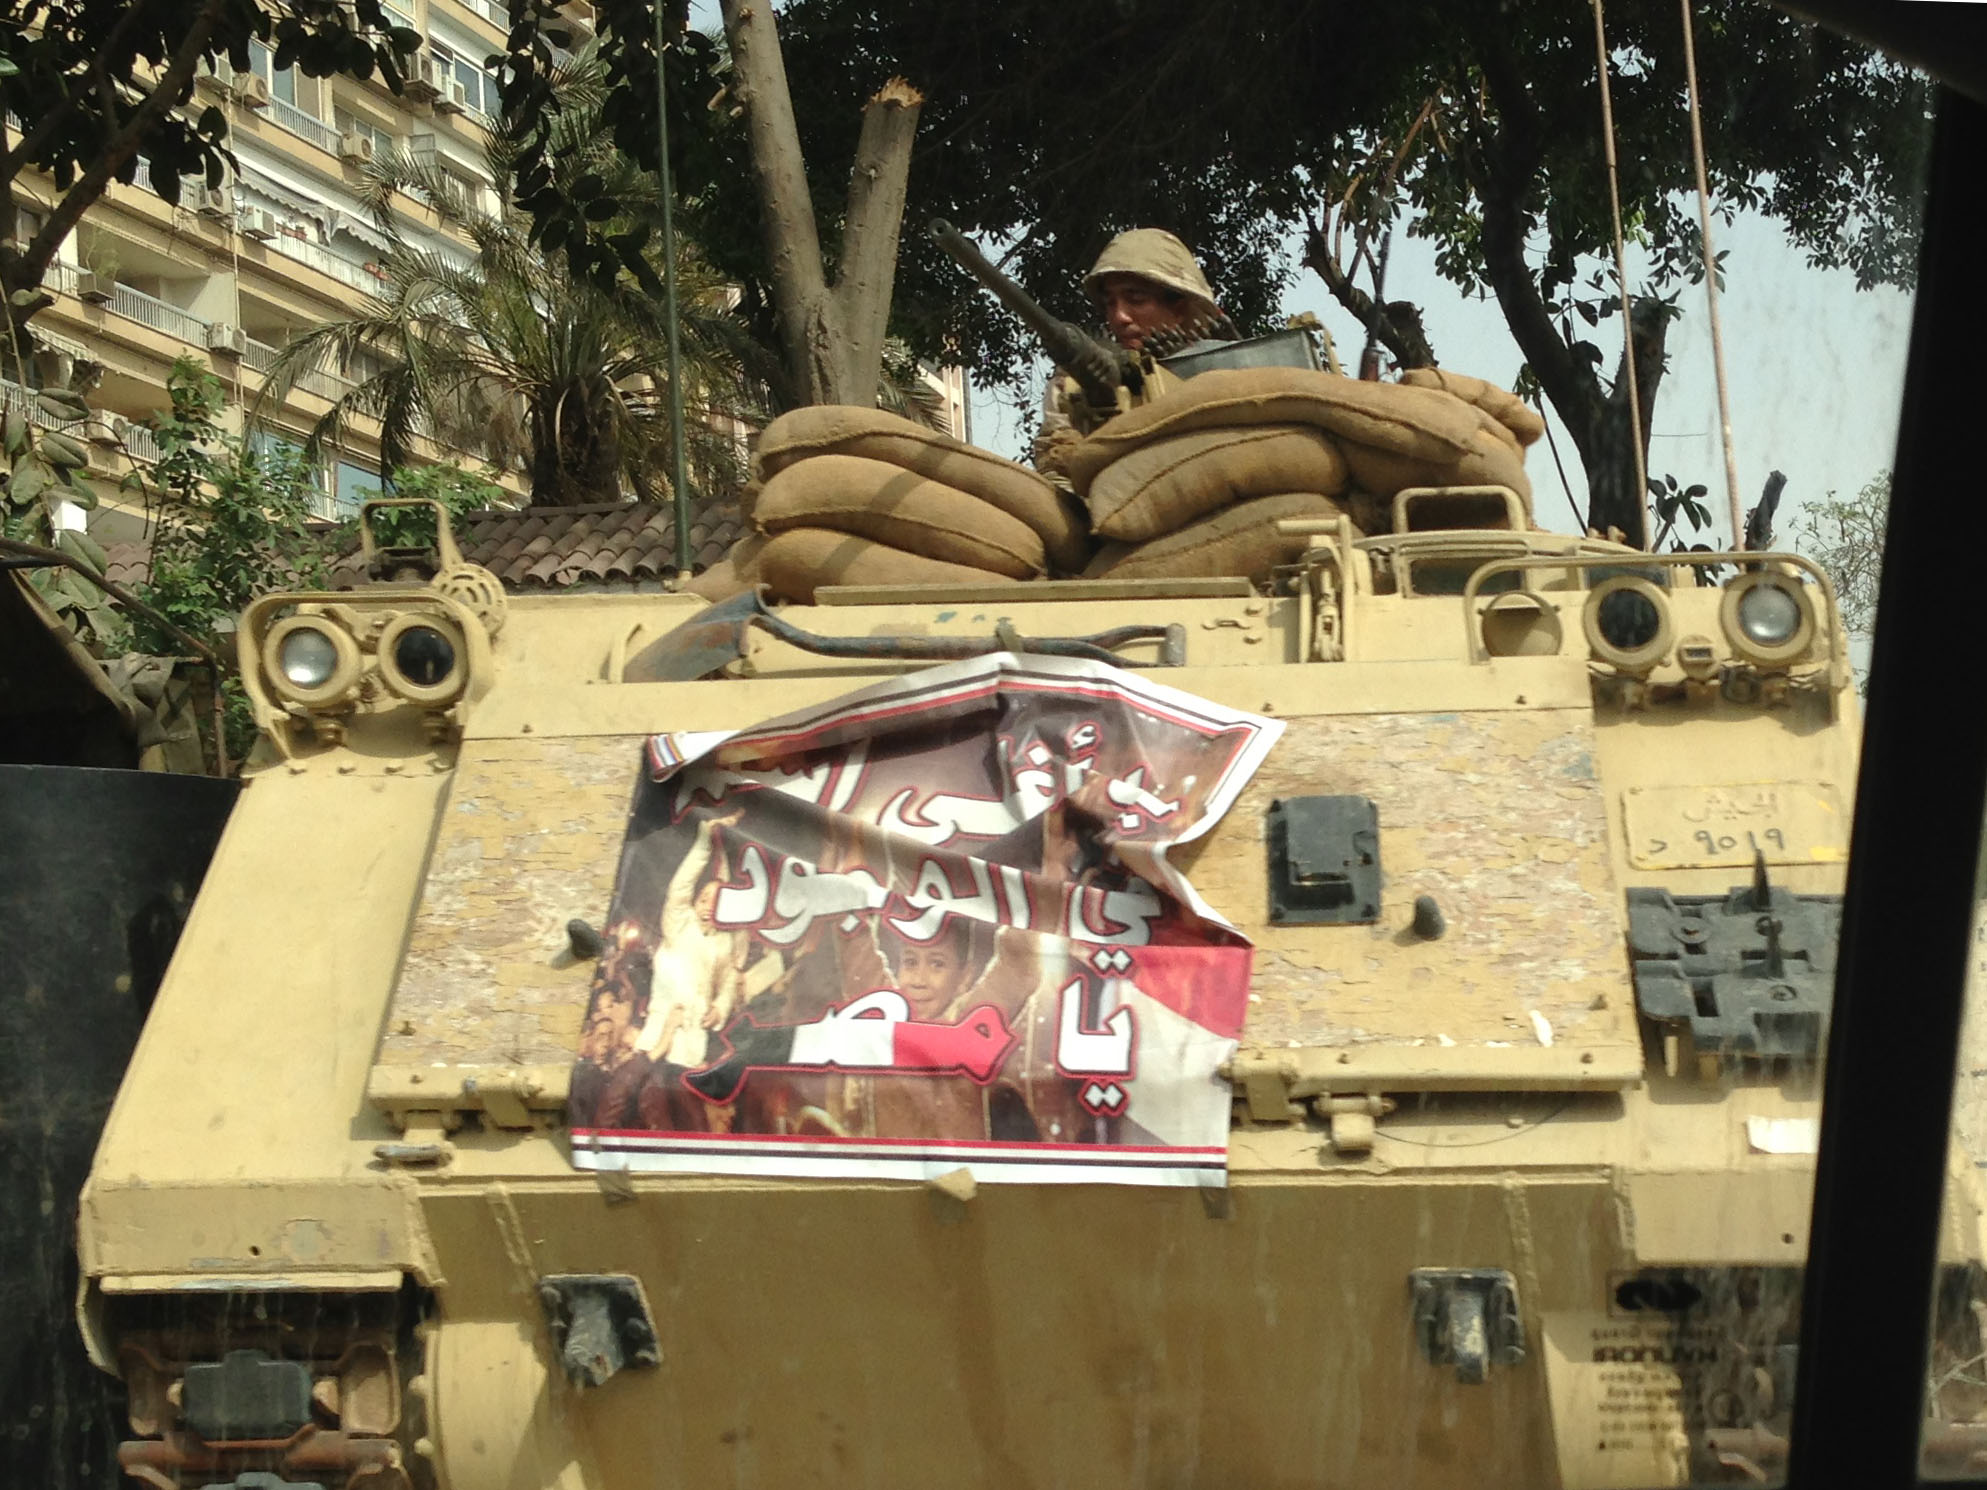 Propaganda poster on tank at military check point, El Maadi/Corniche, Cairo 2014